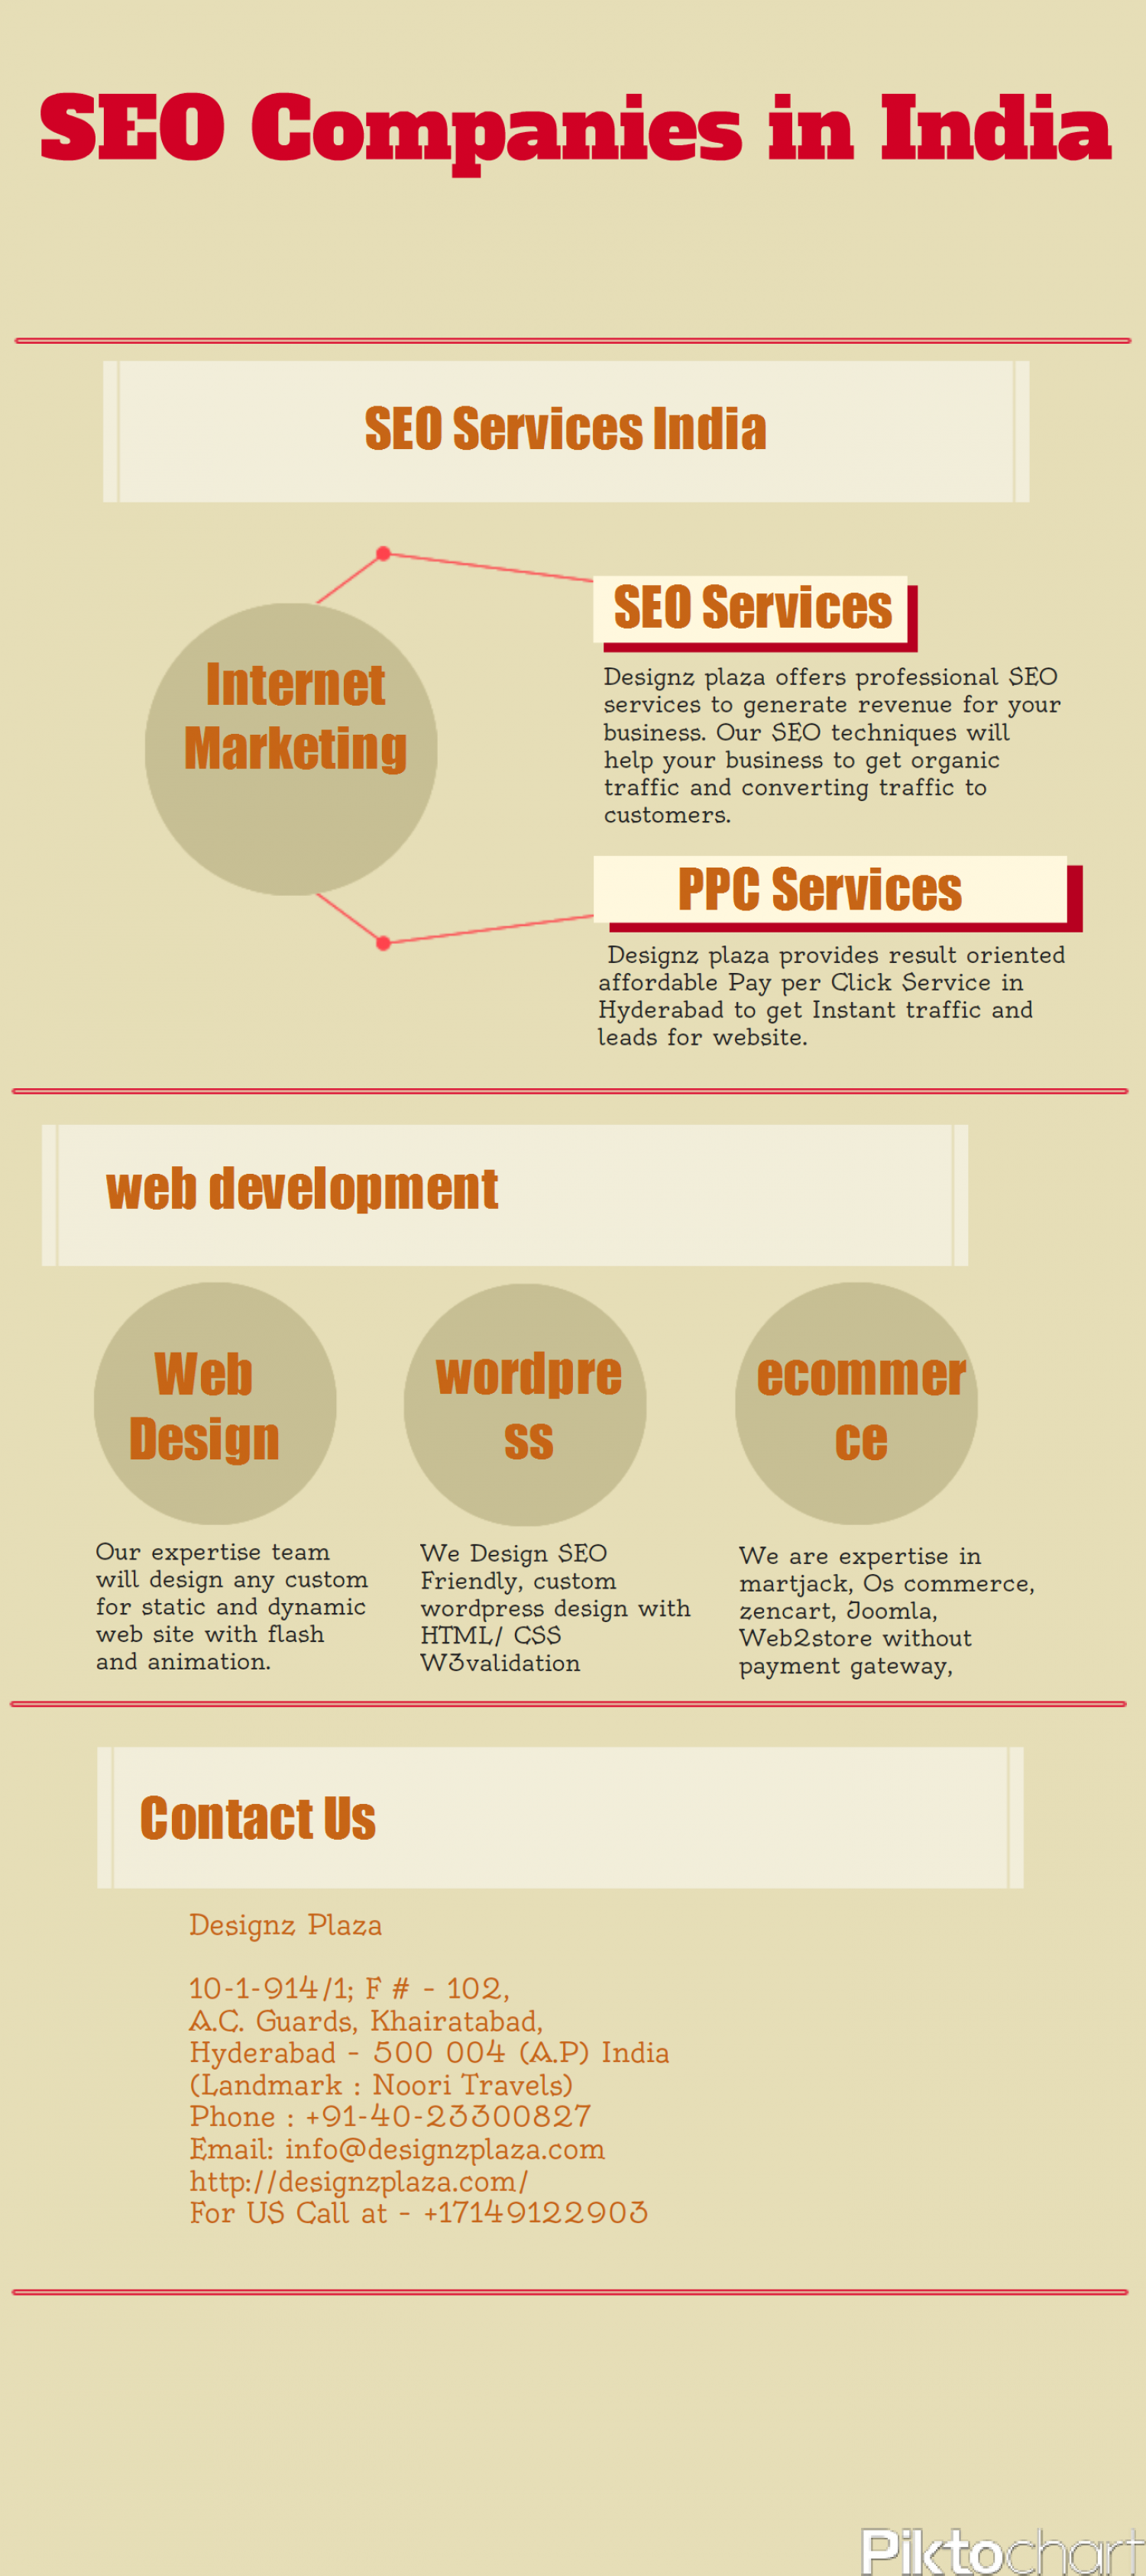 SEO Services India Infographic